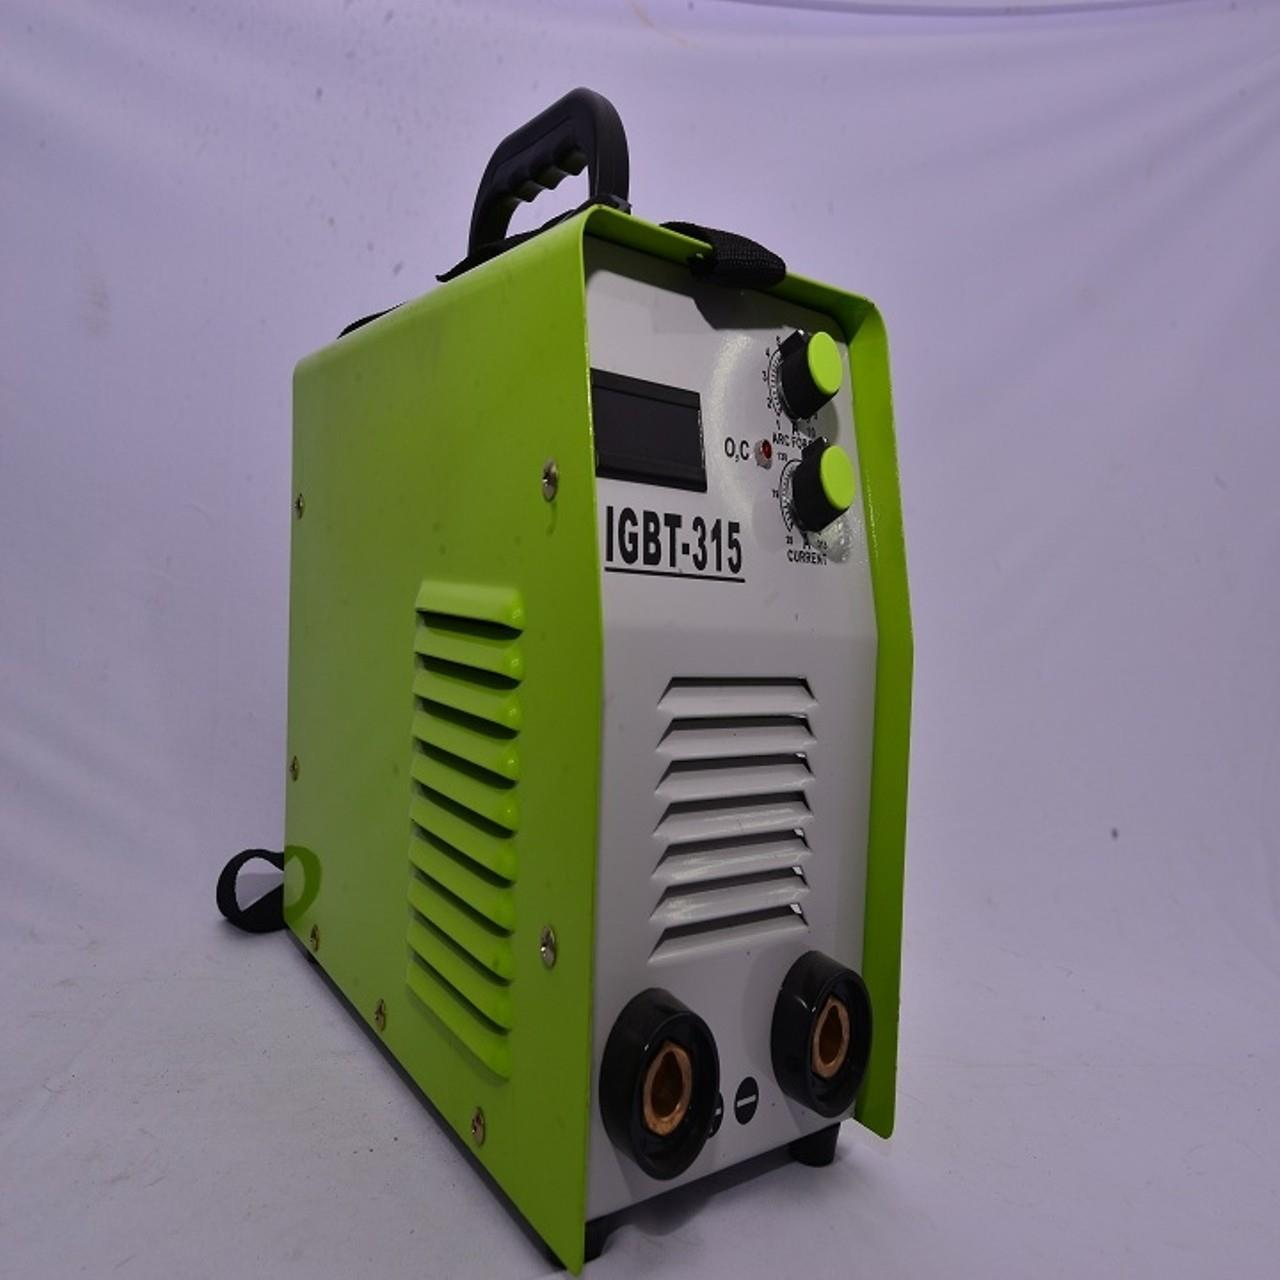 Red Ant Welding Machine Igbt 160a Travo Las Red Ant 160 Referensi Source · N i b n Igbt